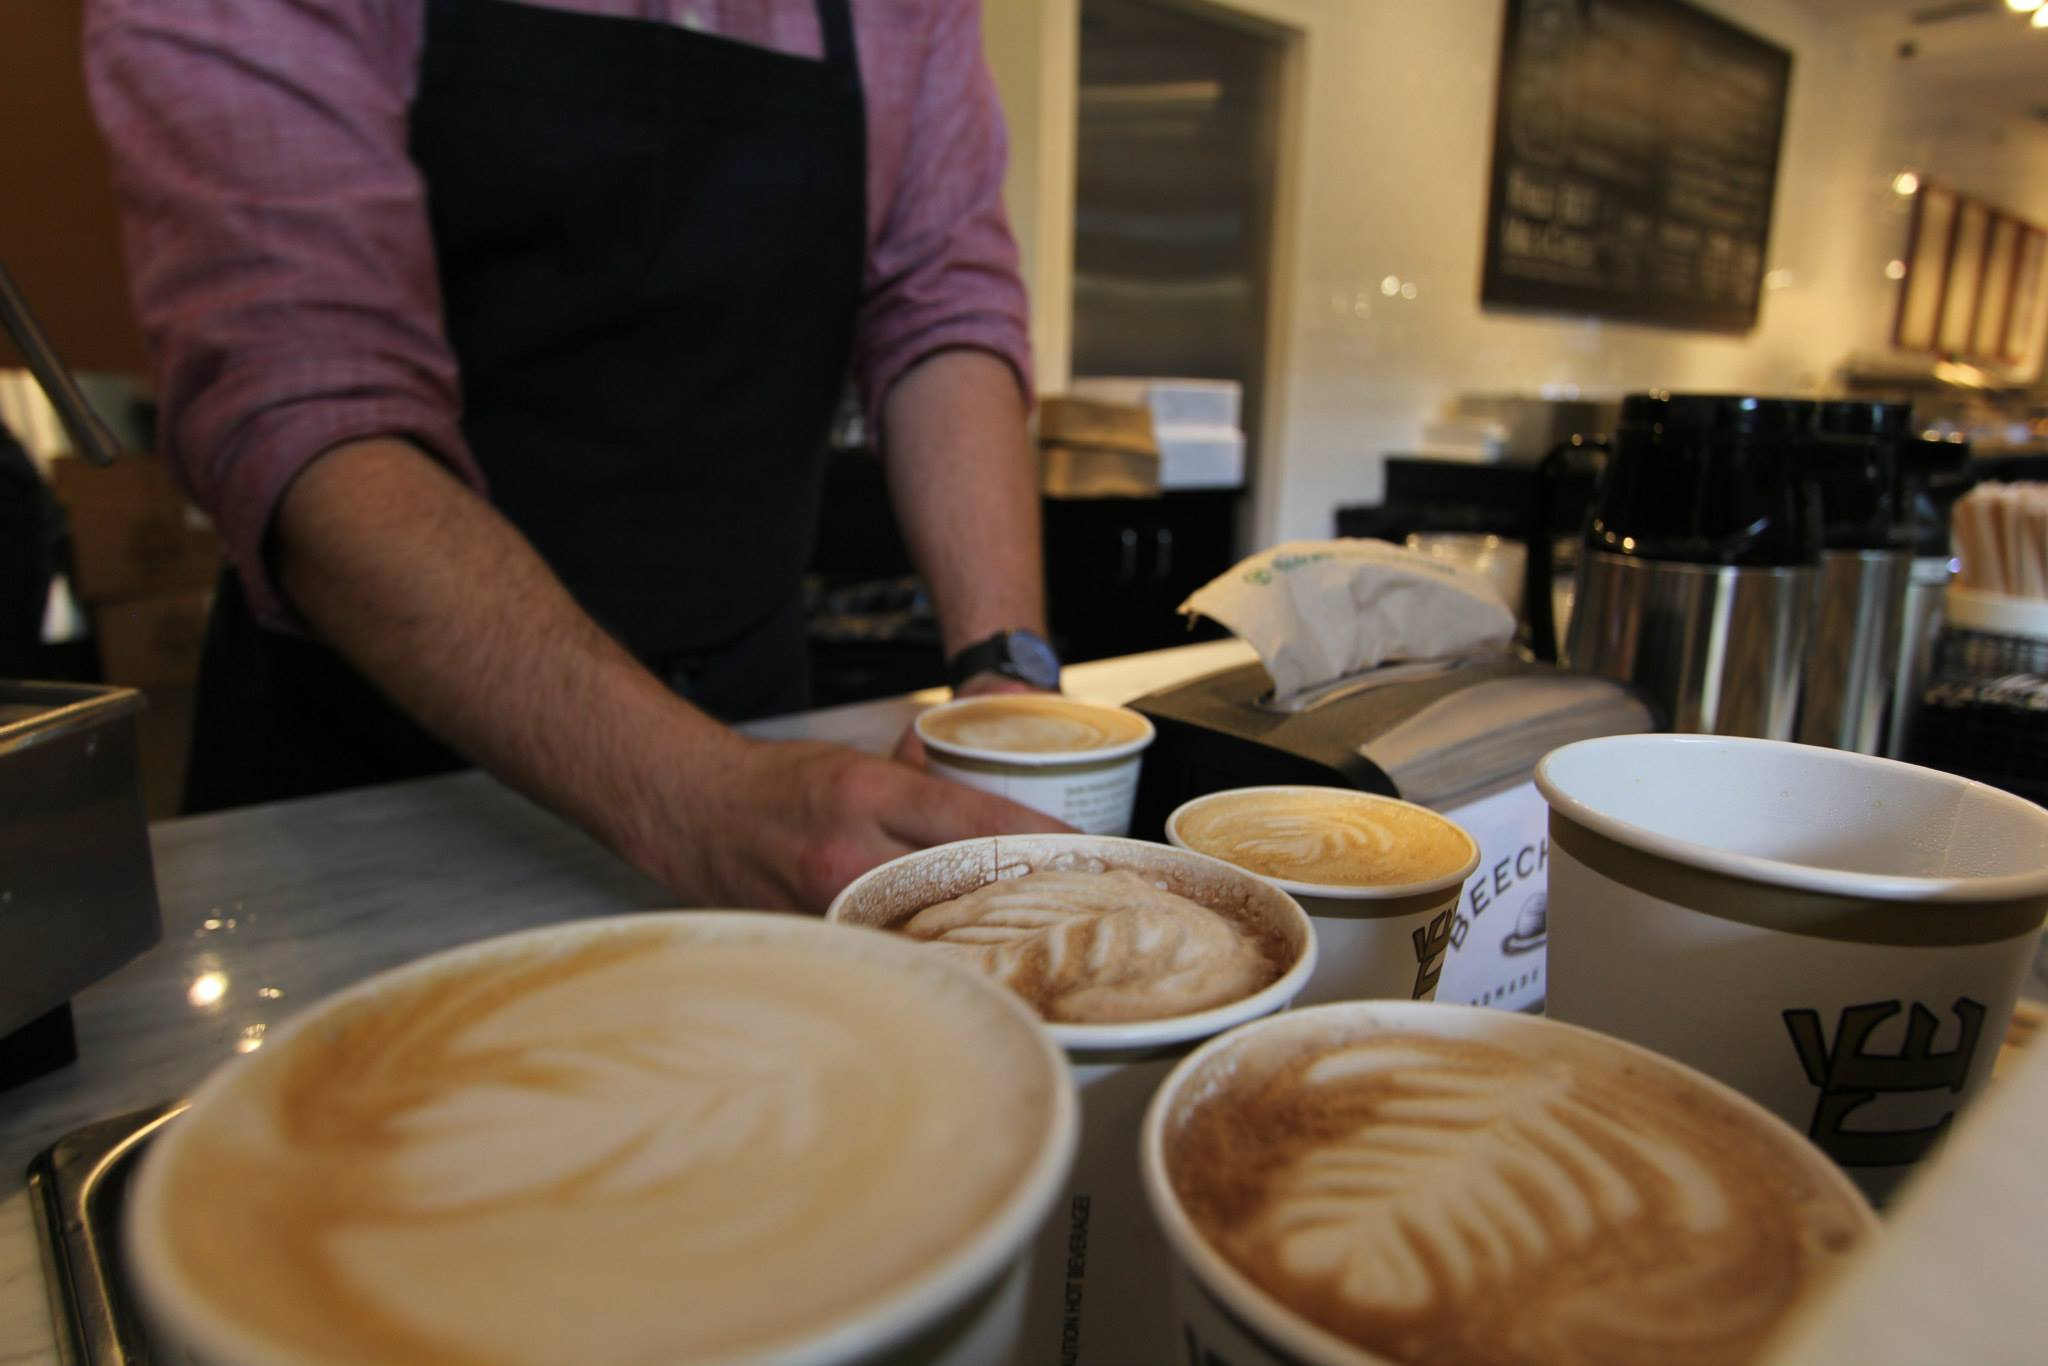 Serving up coffee from Fonte